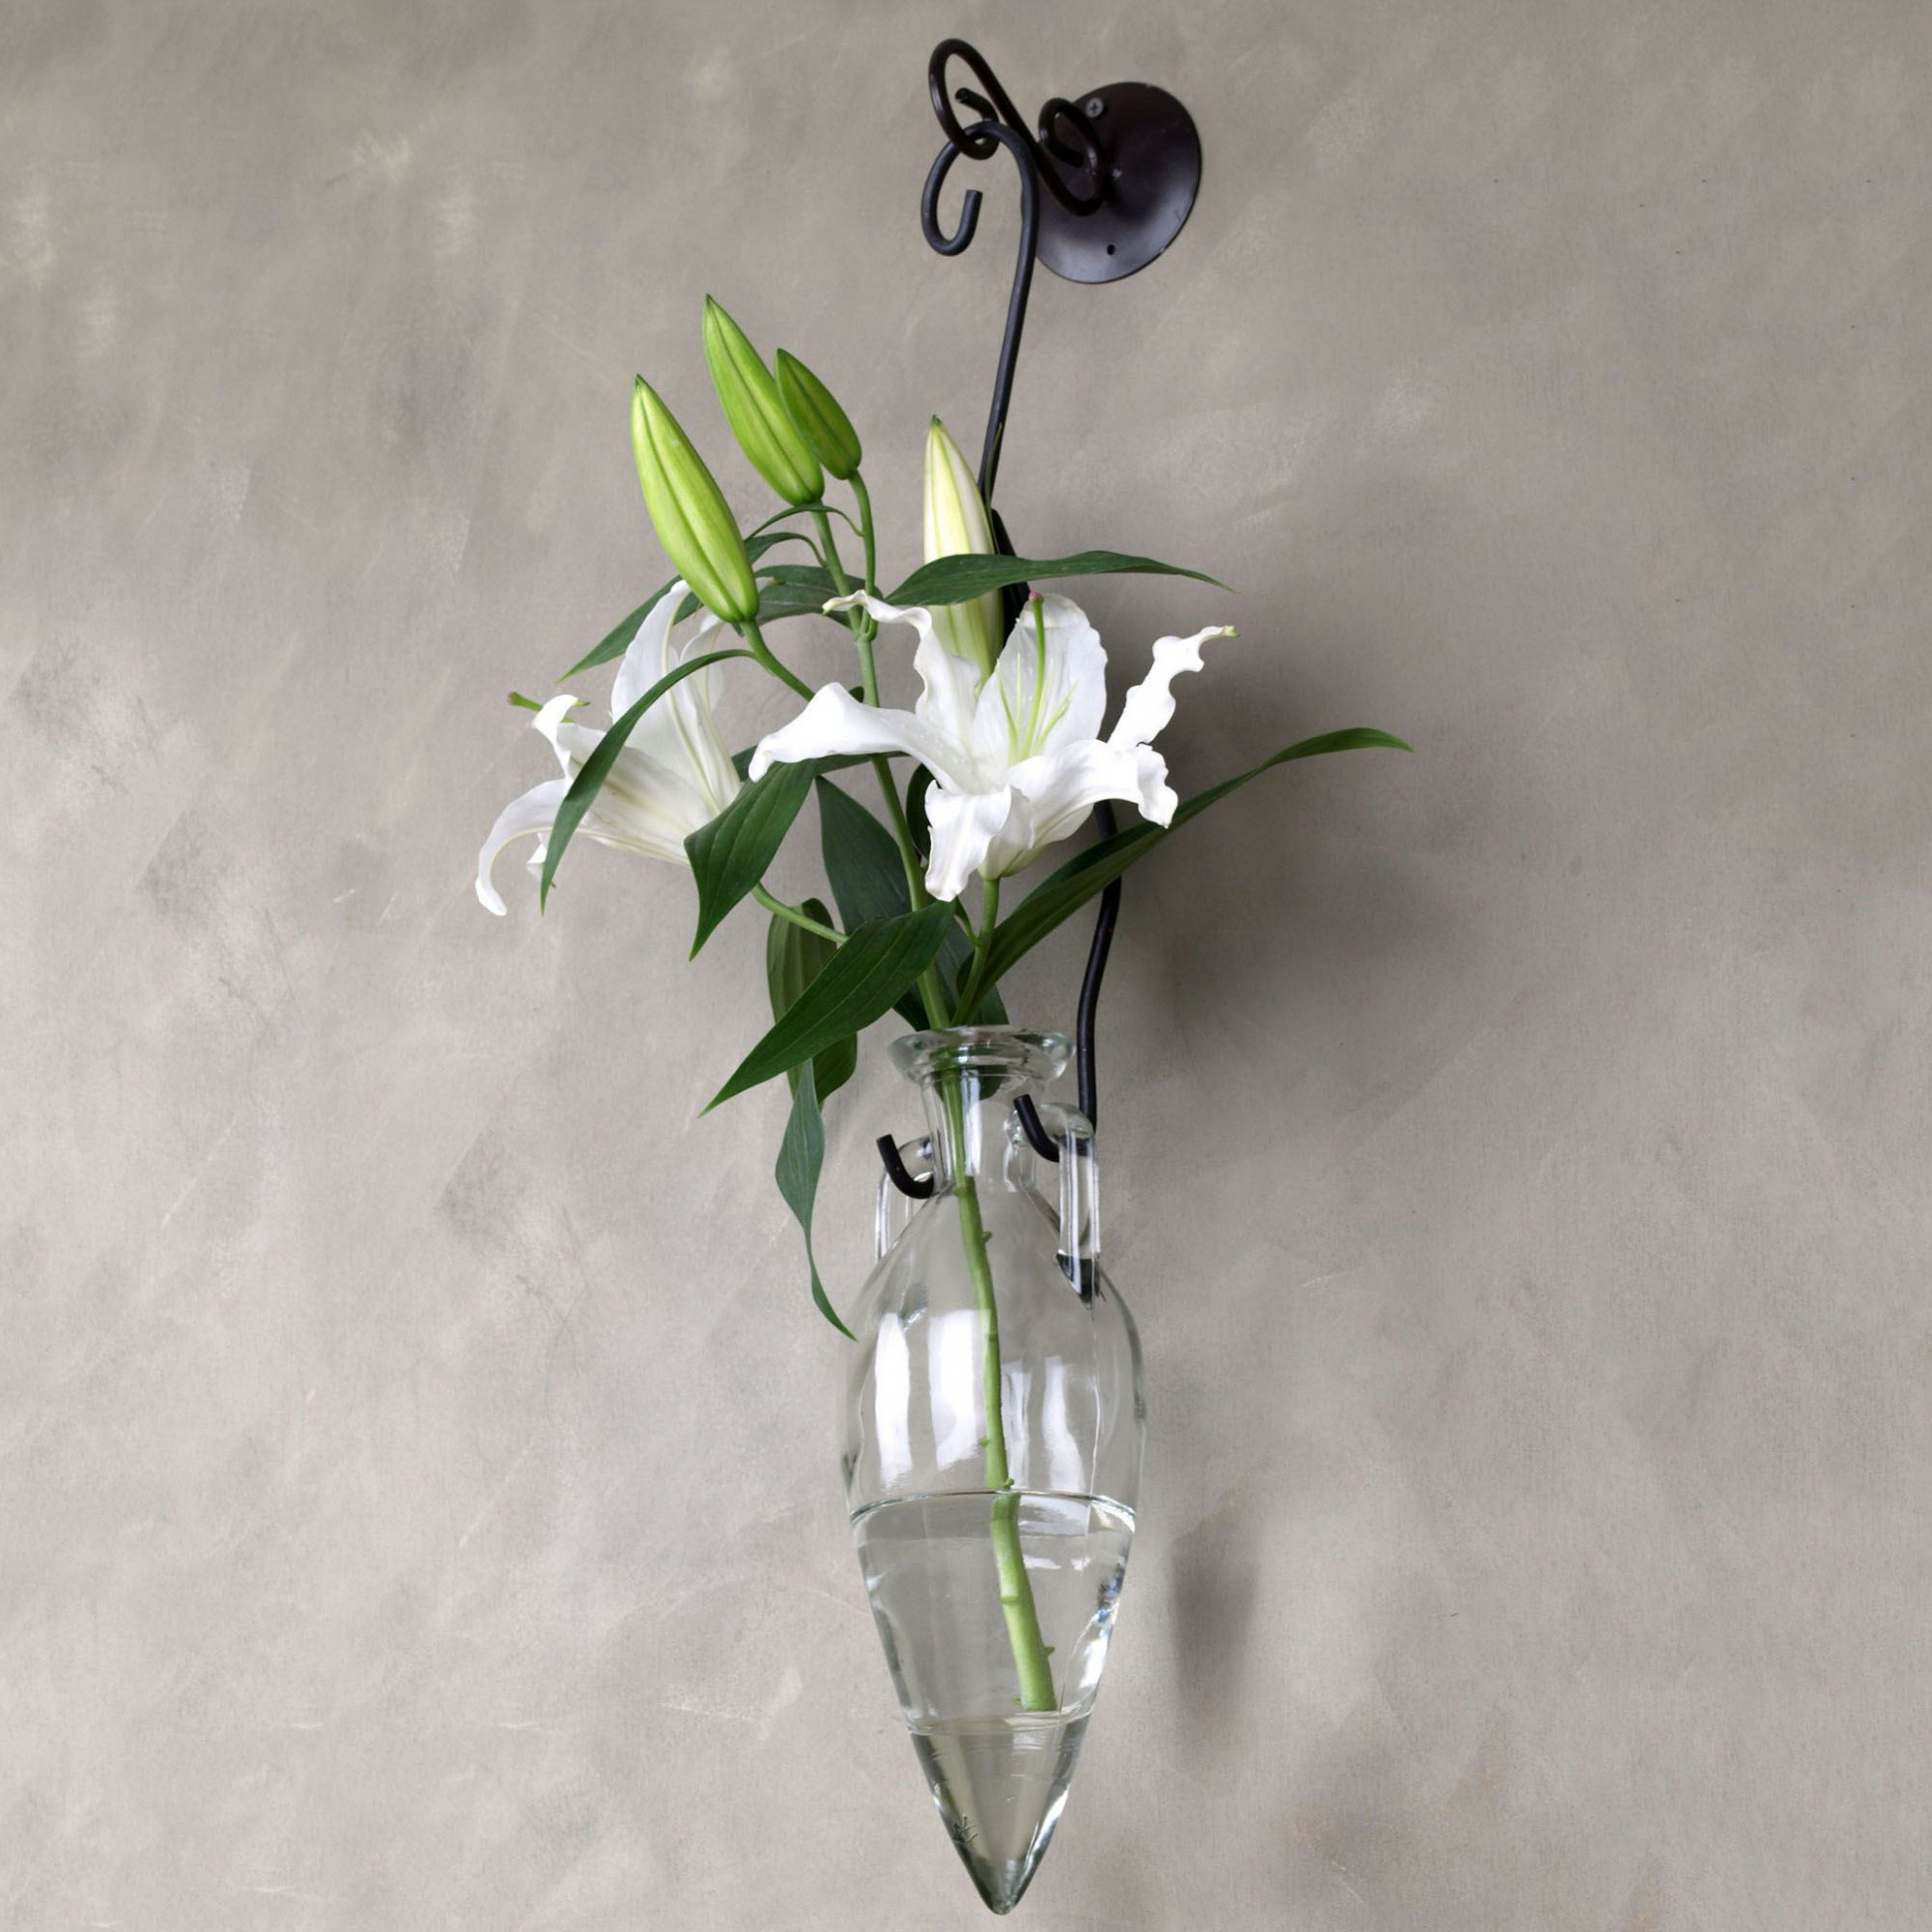 koi fish vase of 33 sleek vase water fountain outdoor beautify your design water intended for h vases wall hanging flower vase newspaper i 0d scheme wall scheme design outdoor wall